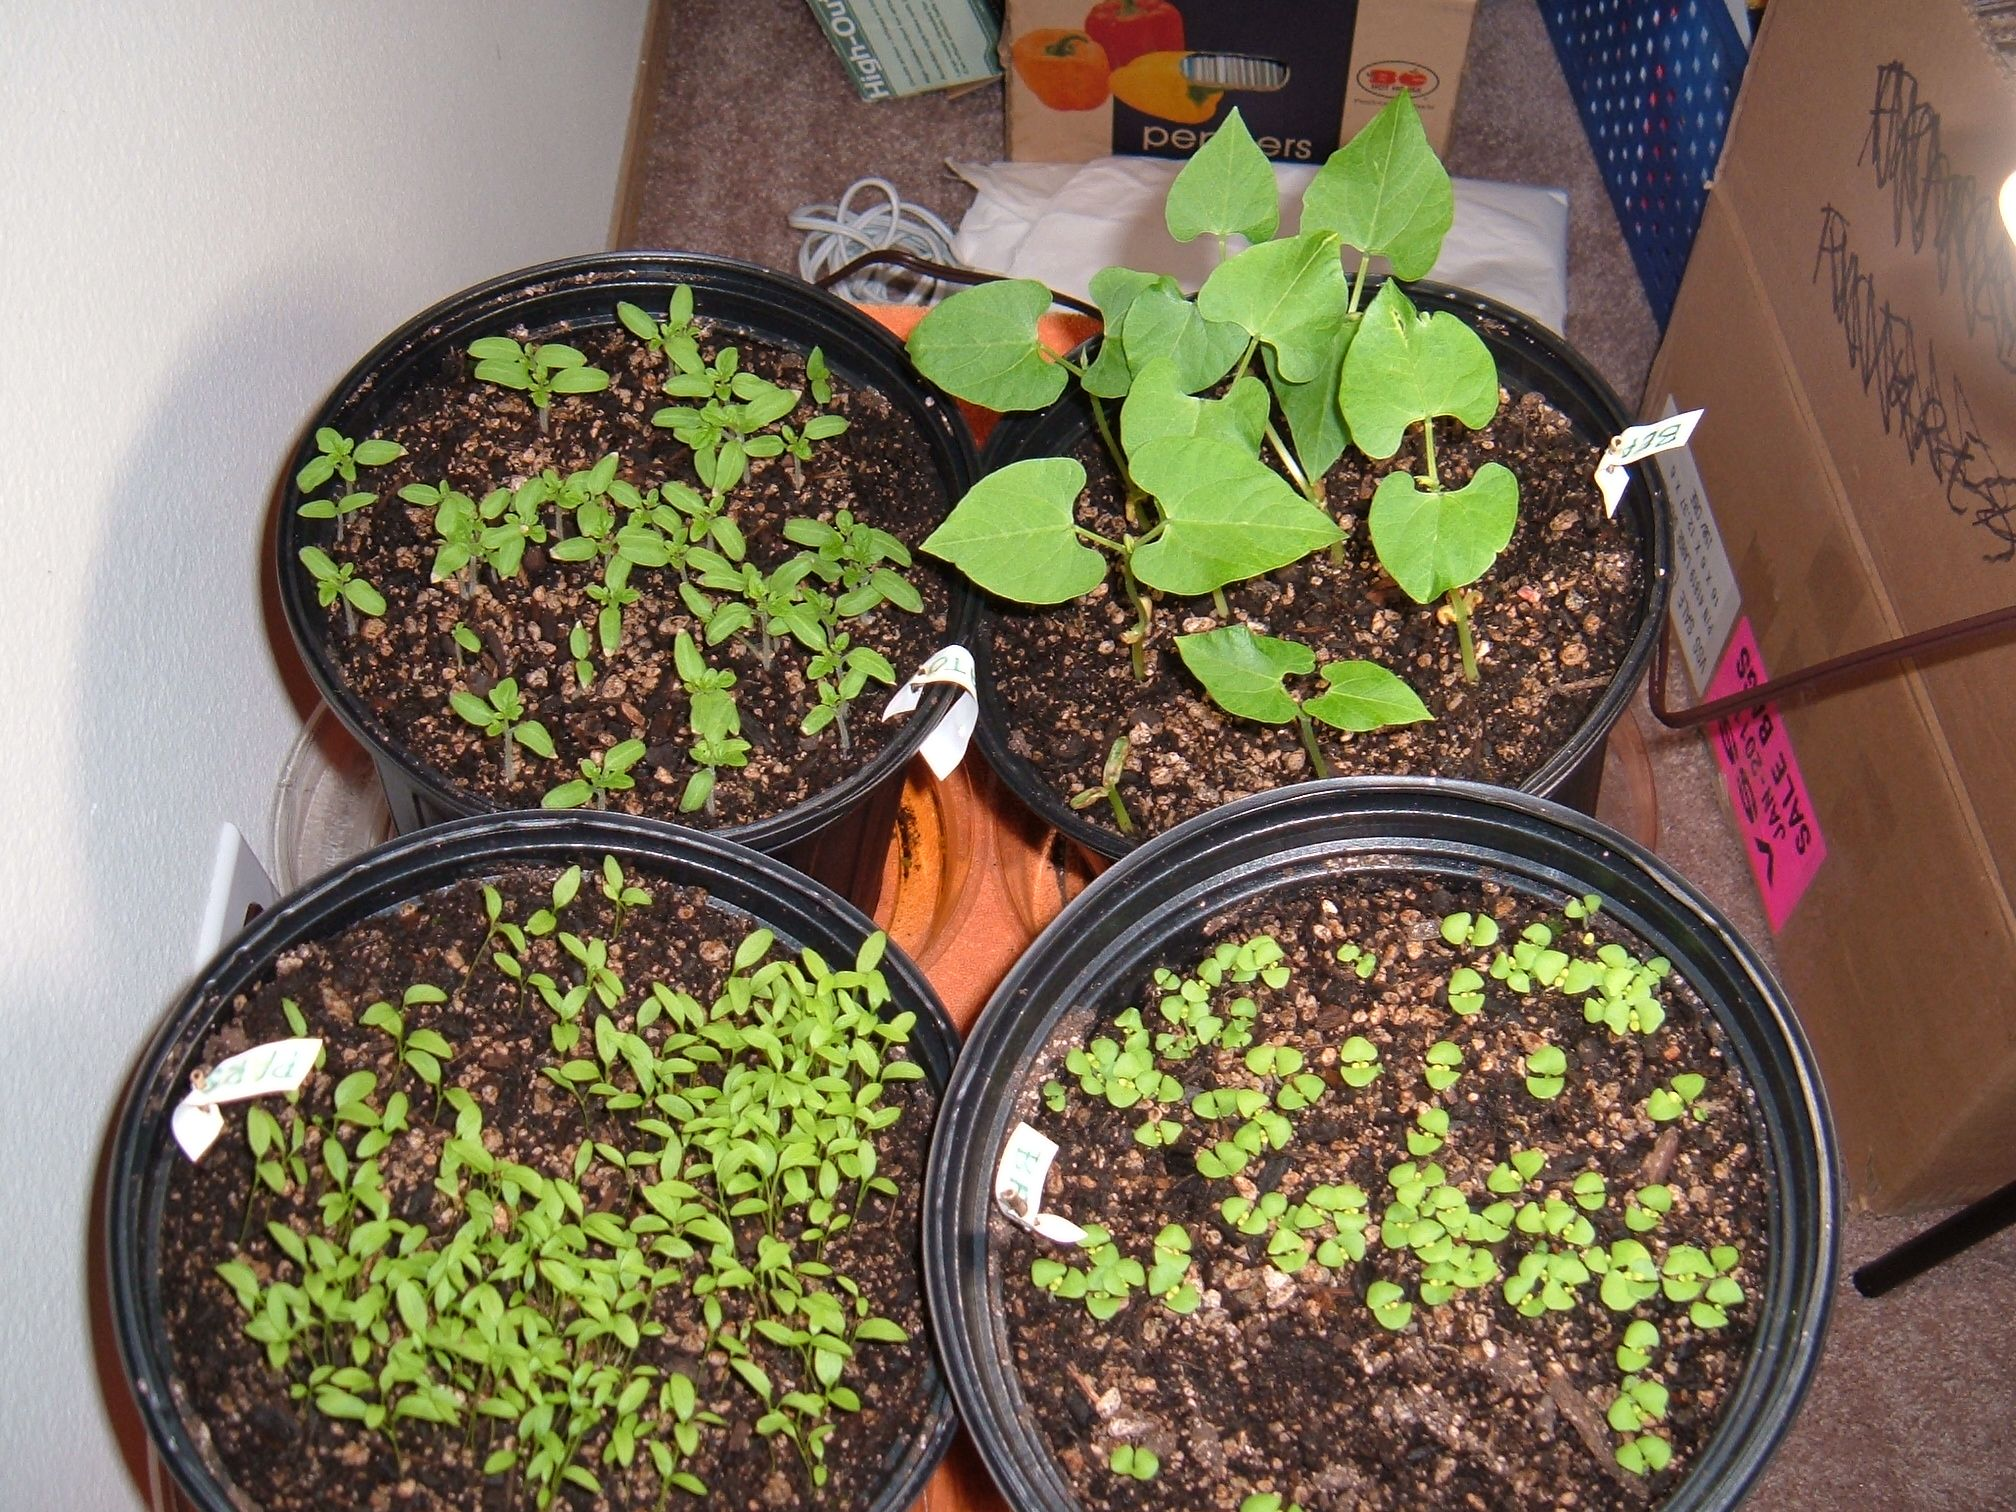 Indoor apartment herb garden | All Things Awesome | Pinterest ...